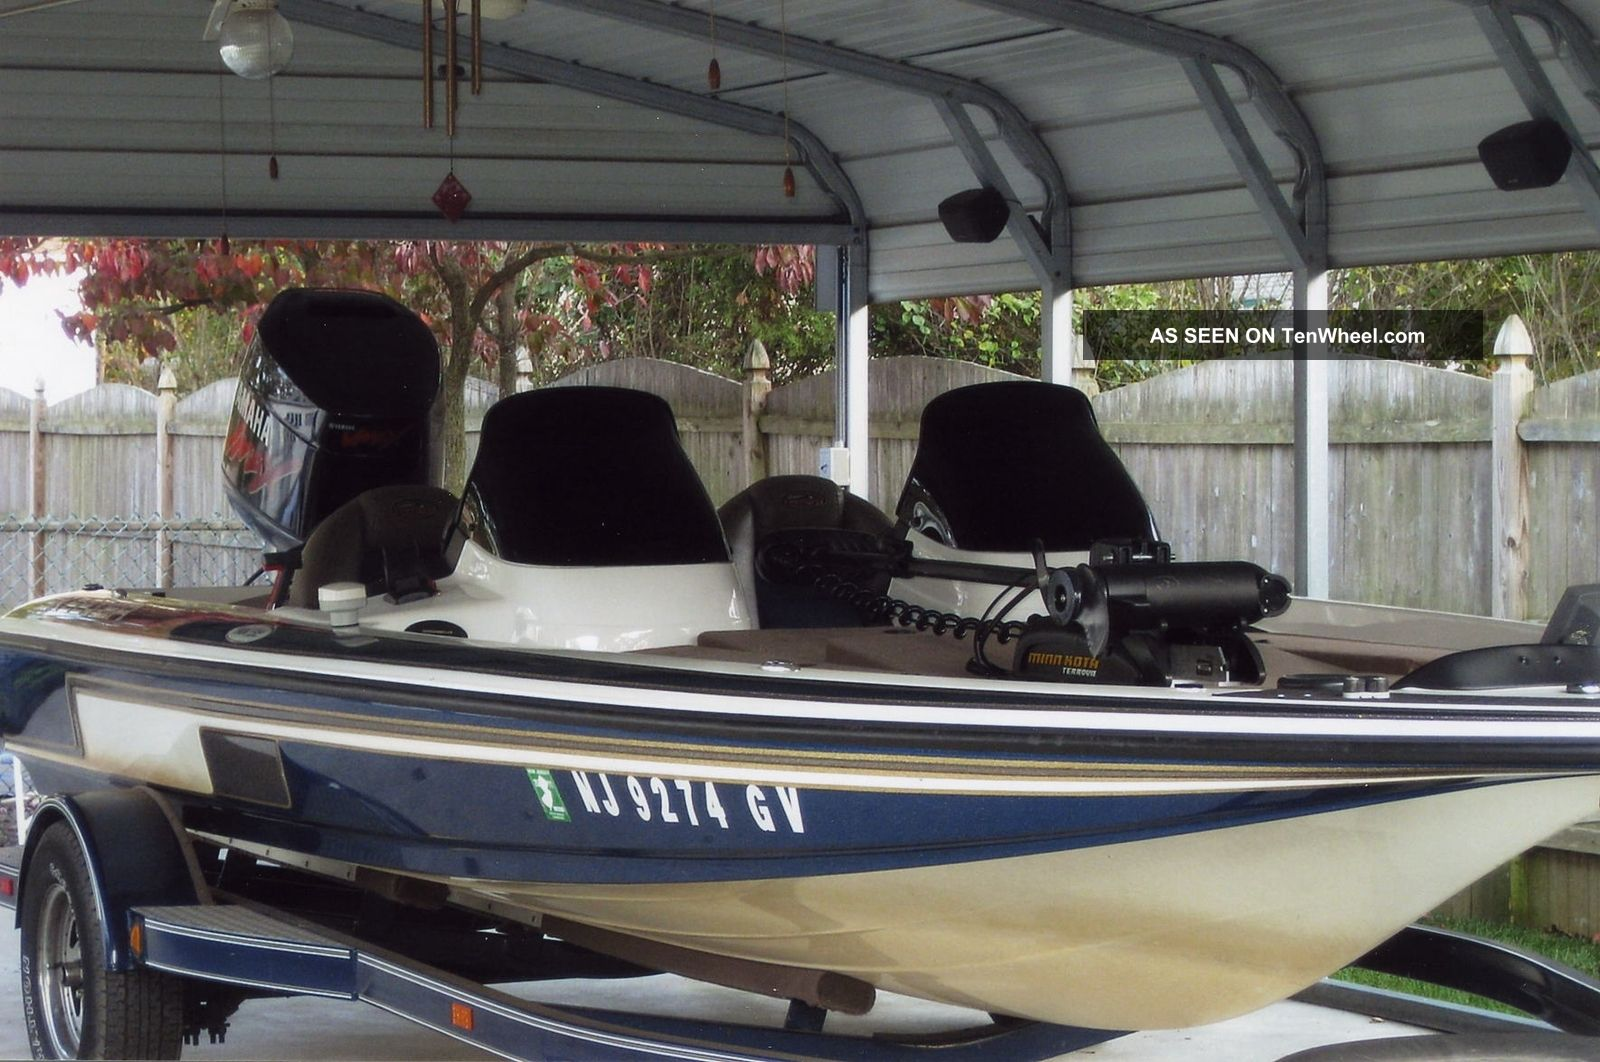 2004 Skeeter Tzx190 Bass Fishing Boats photo